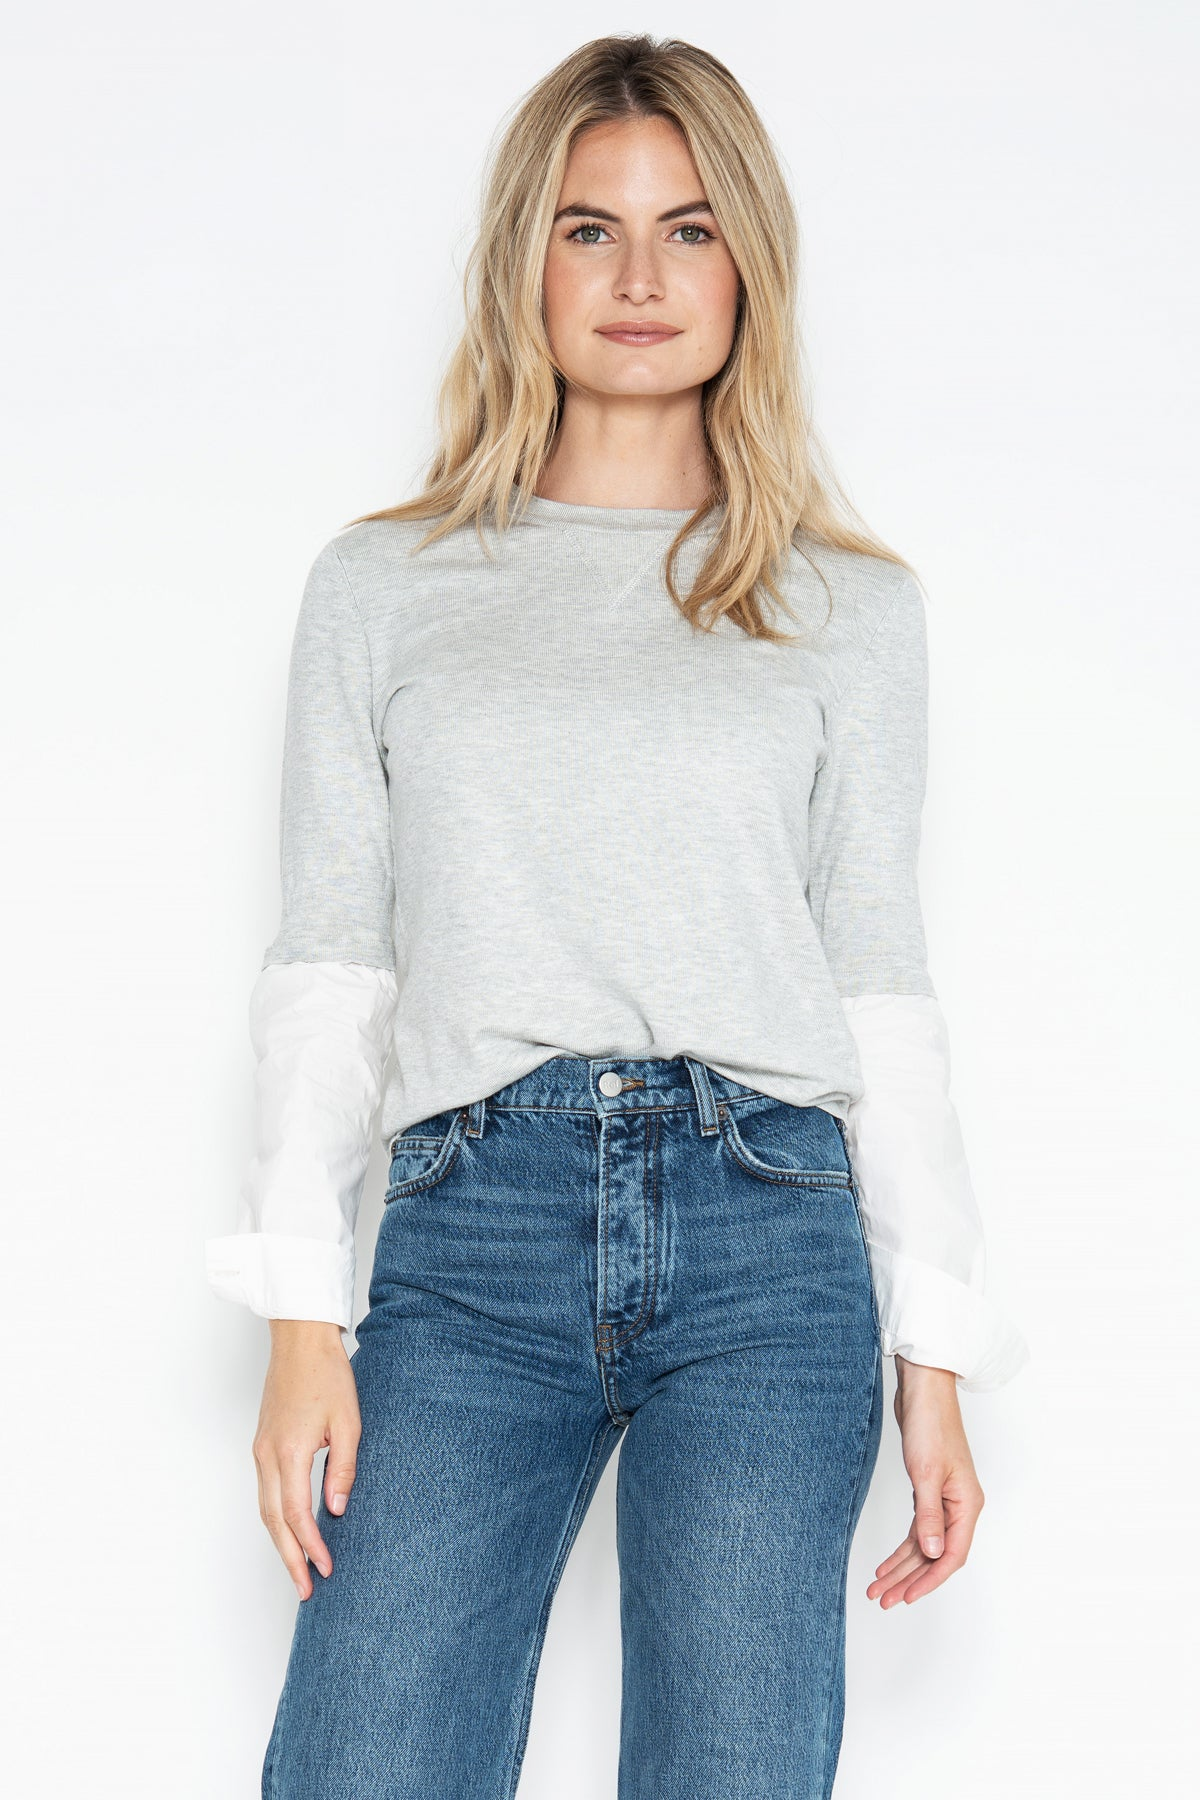 Jackie Poplin Sleeve Top - Silver Shadow